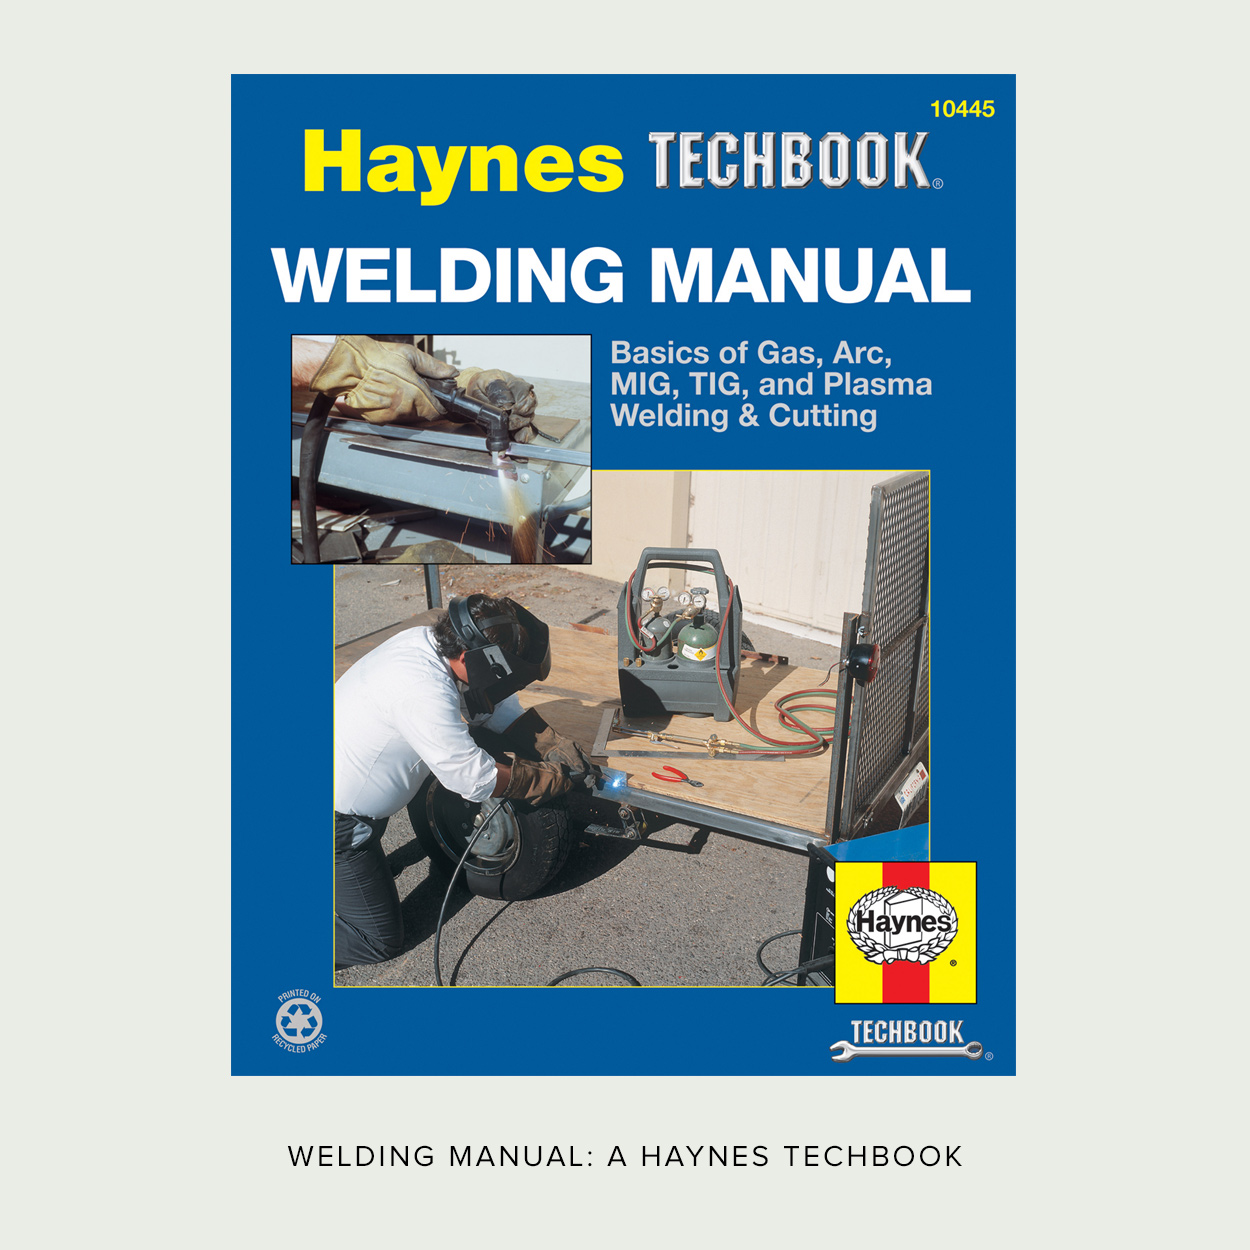 Welding manual a haynes techbook i can t remember where or why i bought this book but it is extremely well written explains concepts clearly